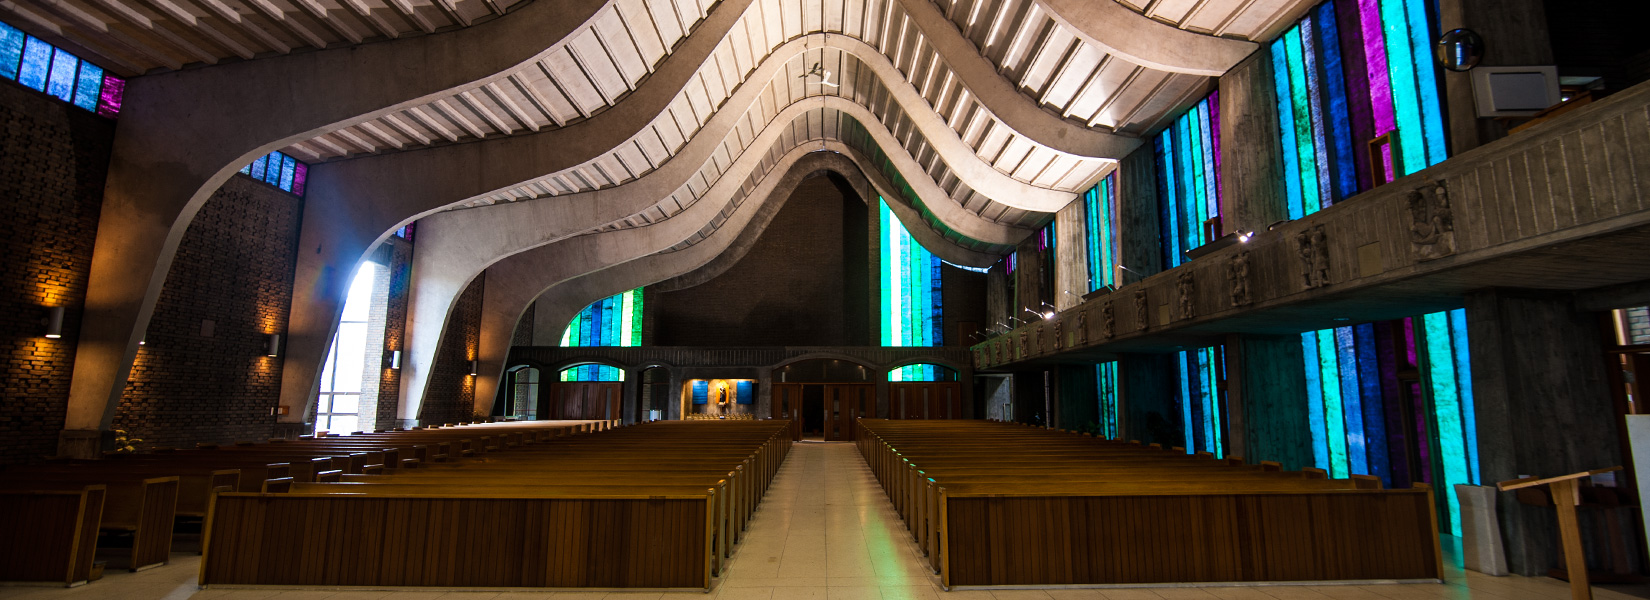 The drift of the concrete church